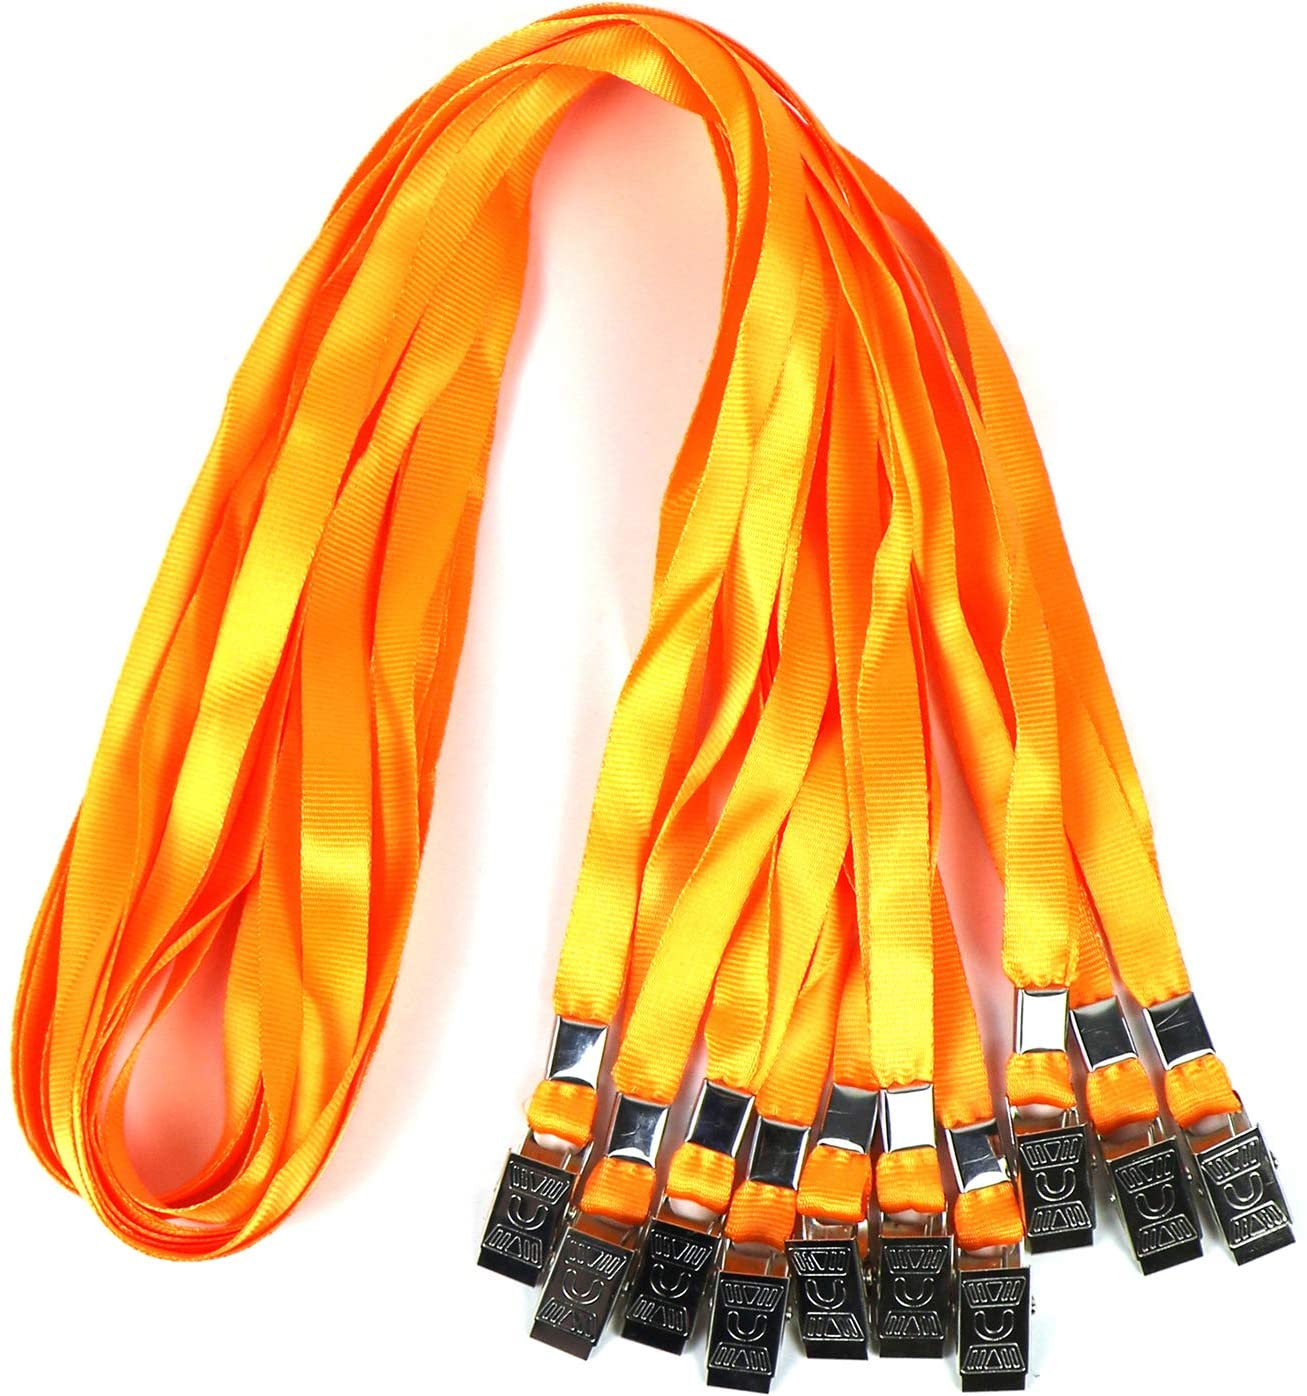 Lanyards for Id Badges Nylon Neck Flat Cruise Lanyard Bulldog Clips Durably Lanyards for Men Women Office ID Name Tags and Badge Holders (Orange, 50 Pack)